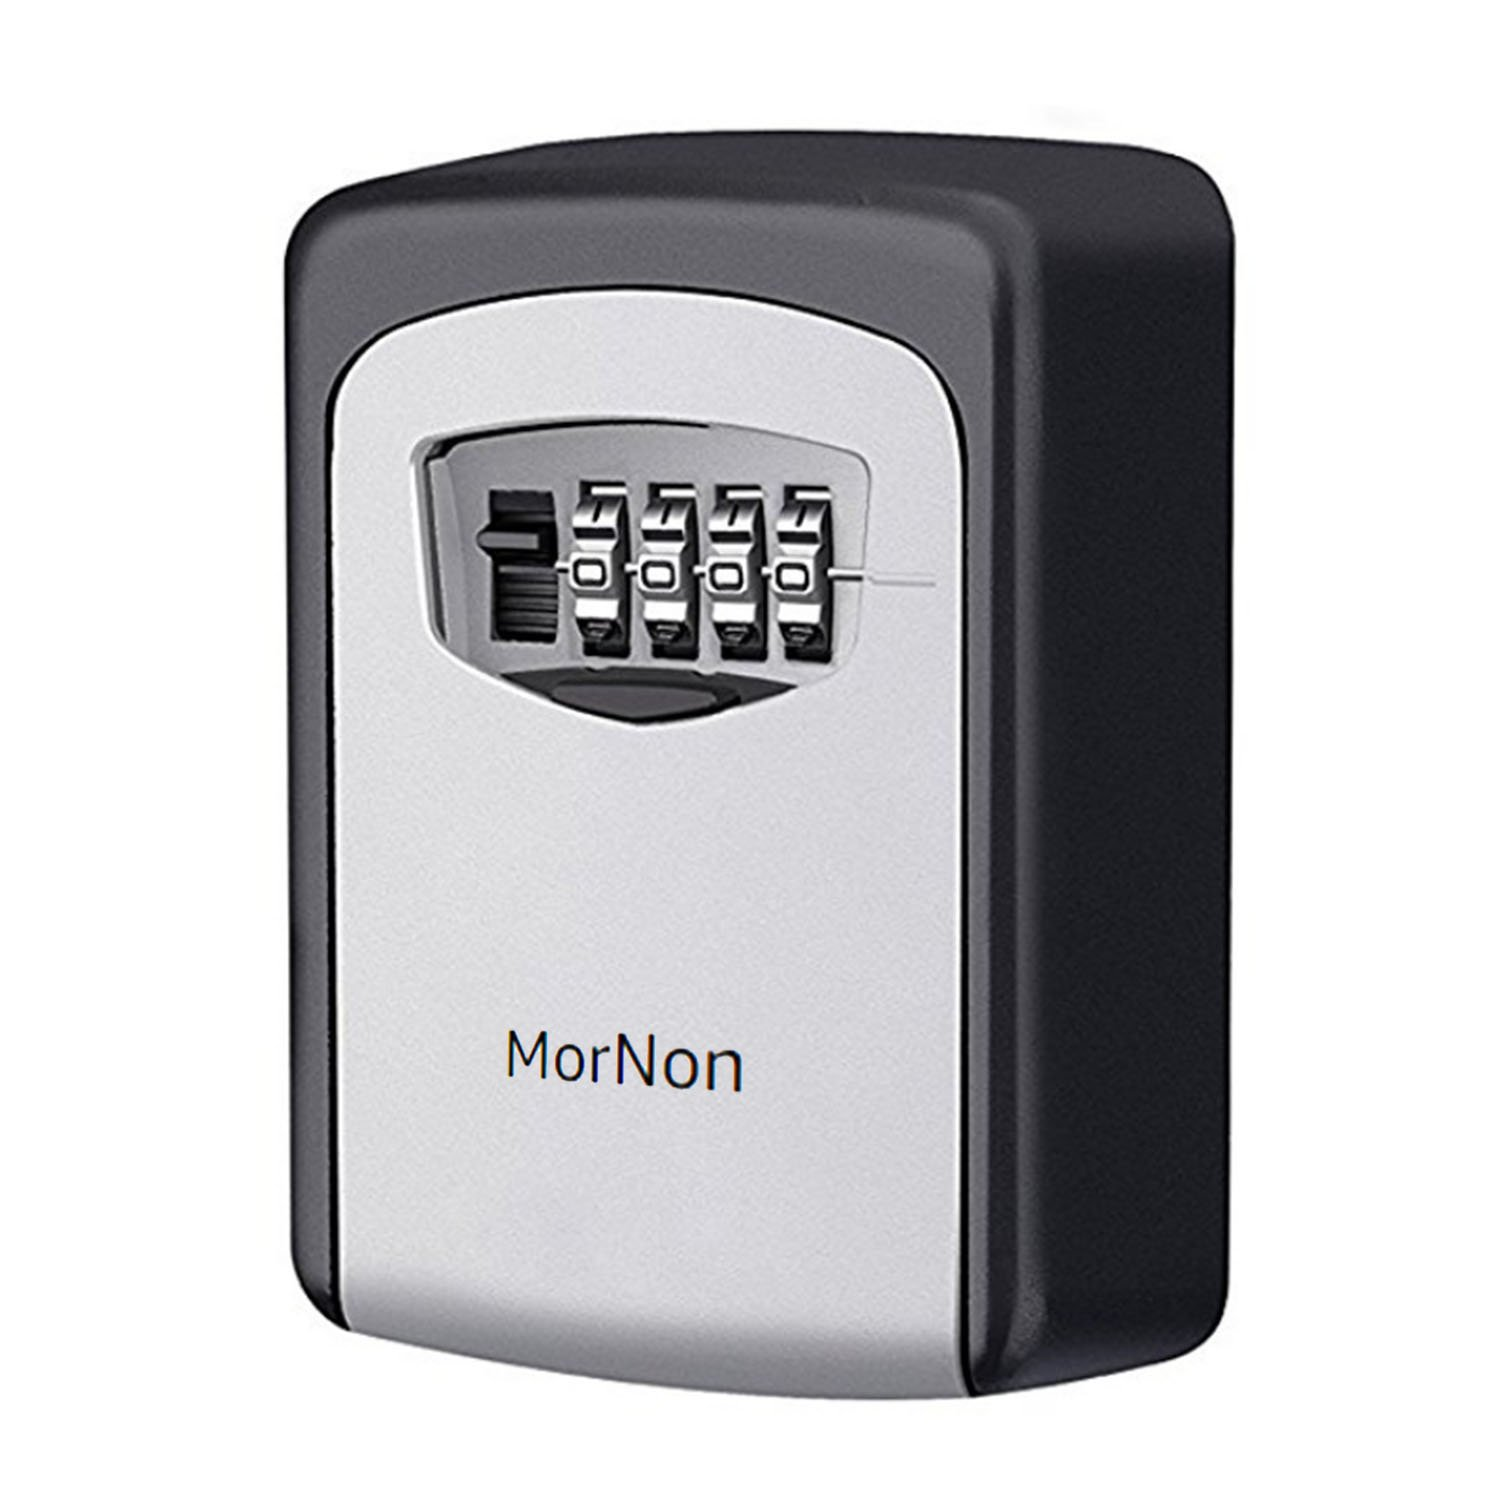 MorNon Key Storage Lock Box 4-Digit Combination Lock Safe Box Resettable Code Wall Mounted Lock Box Grey